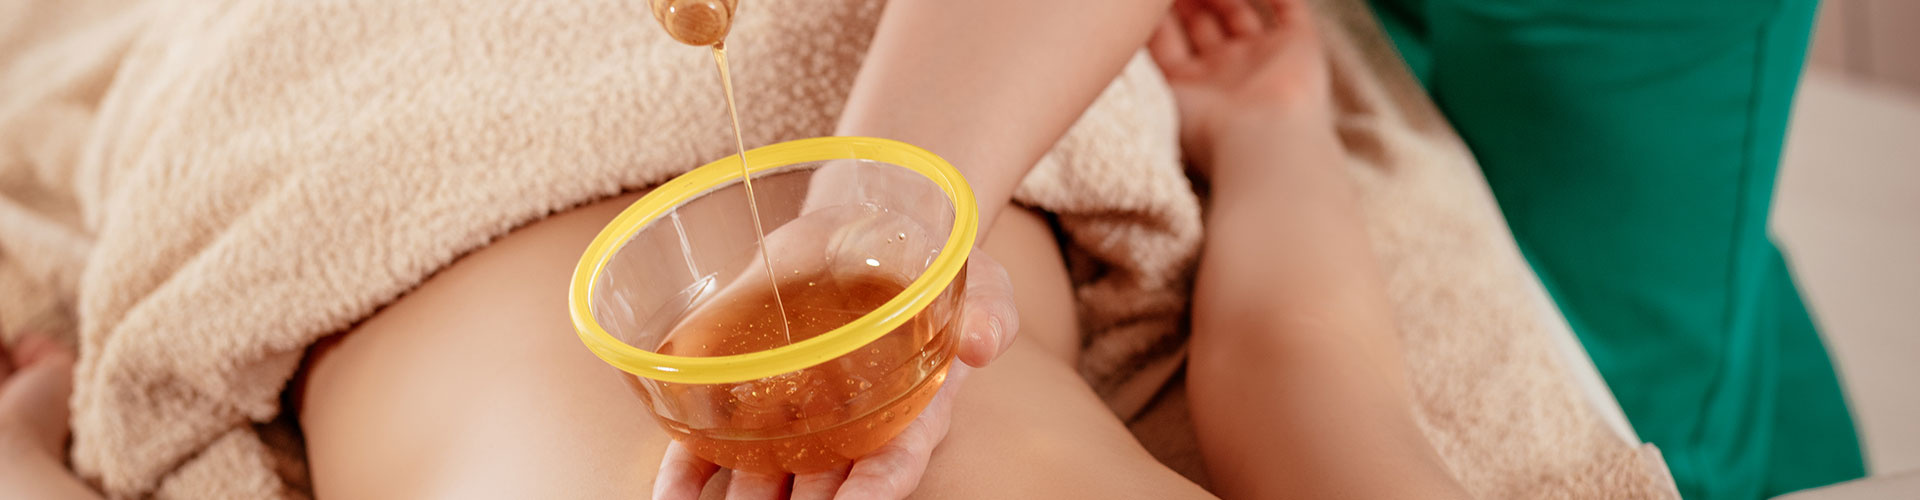 Anti-Cellulite Slimming Treatments in London